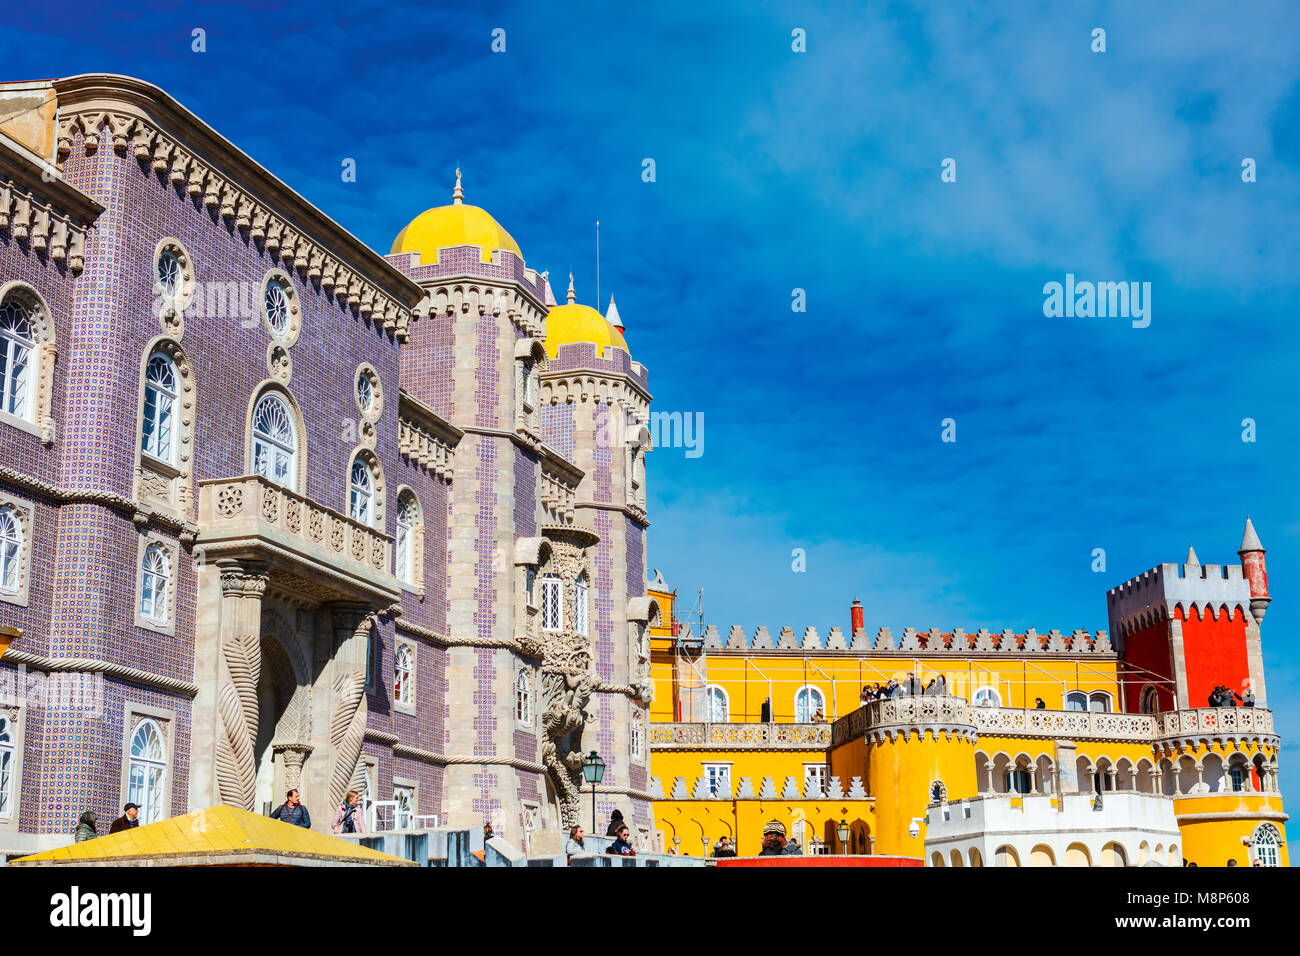 The Royal Palace of Pena, or 'Castelo da Pena' as it is more commonly known, Portugal, Sintra. - Stock Image